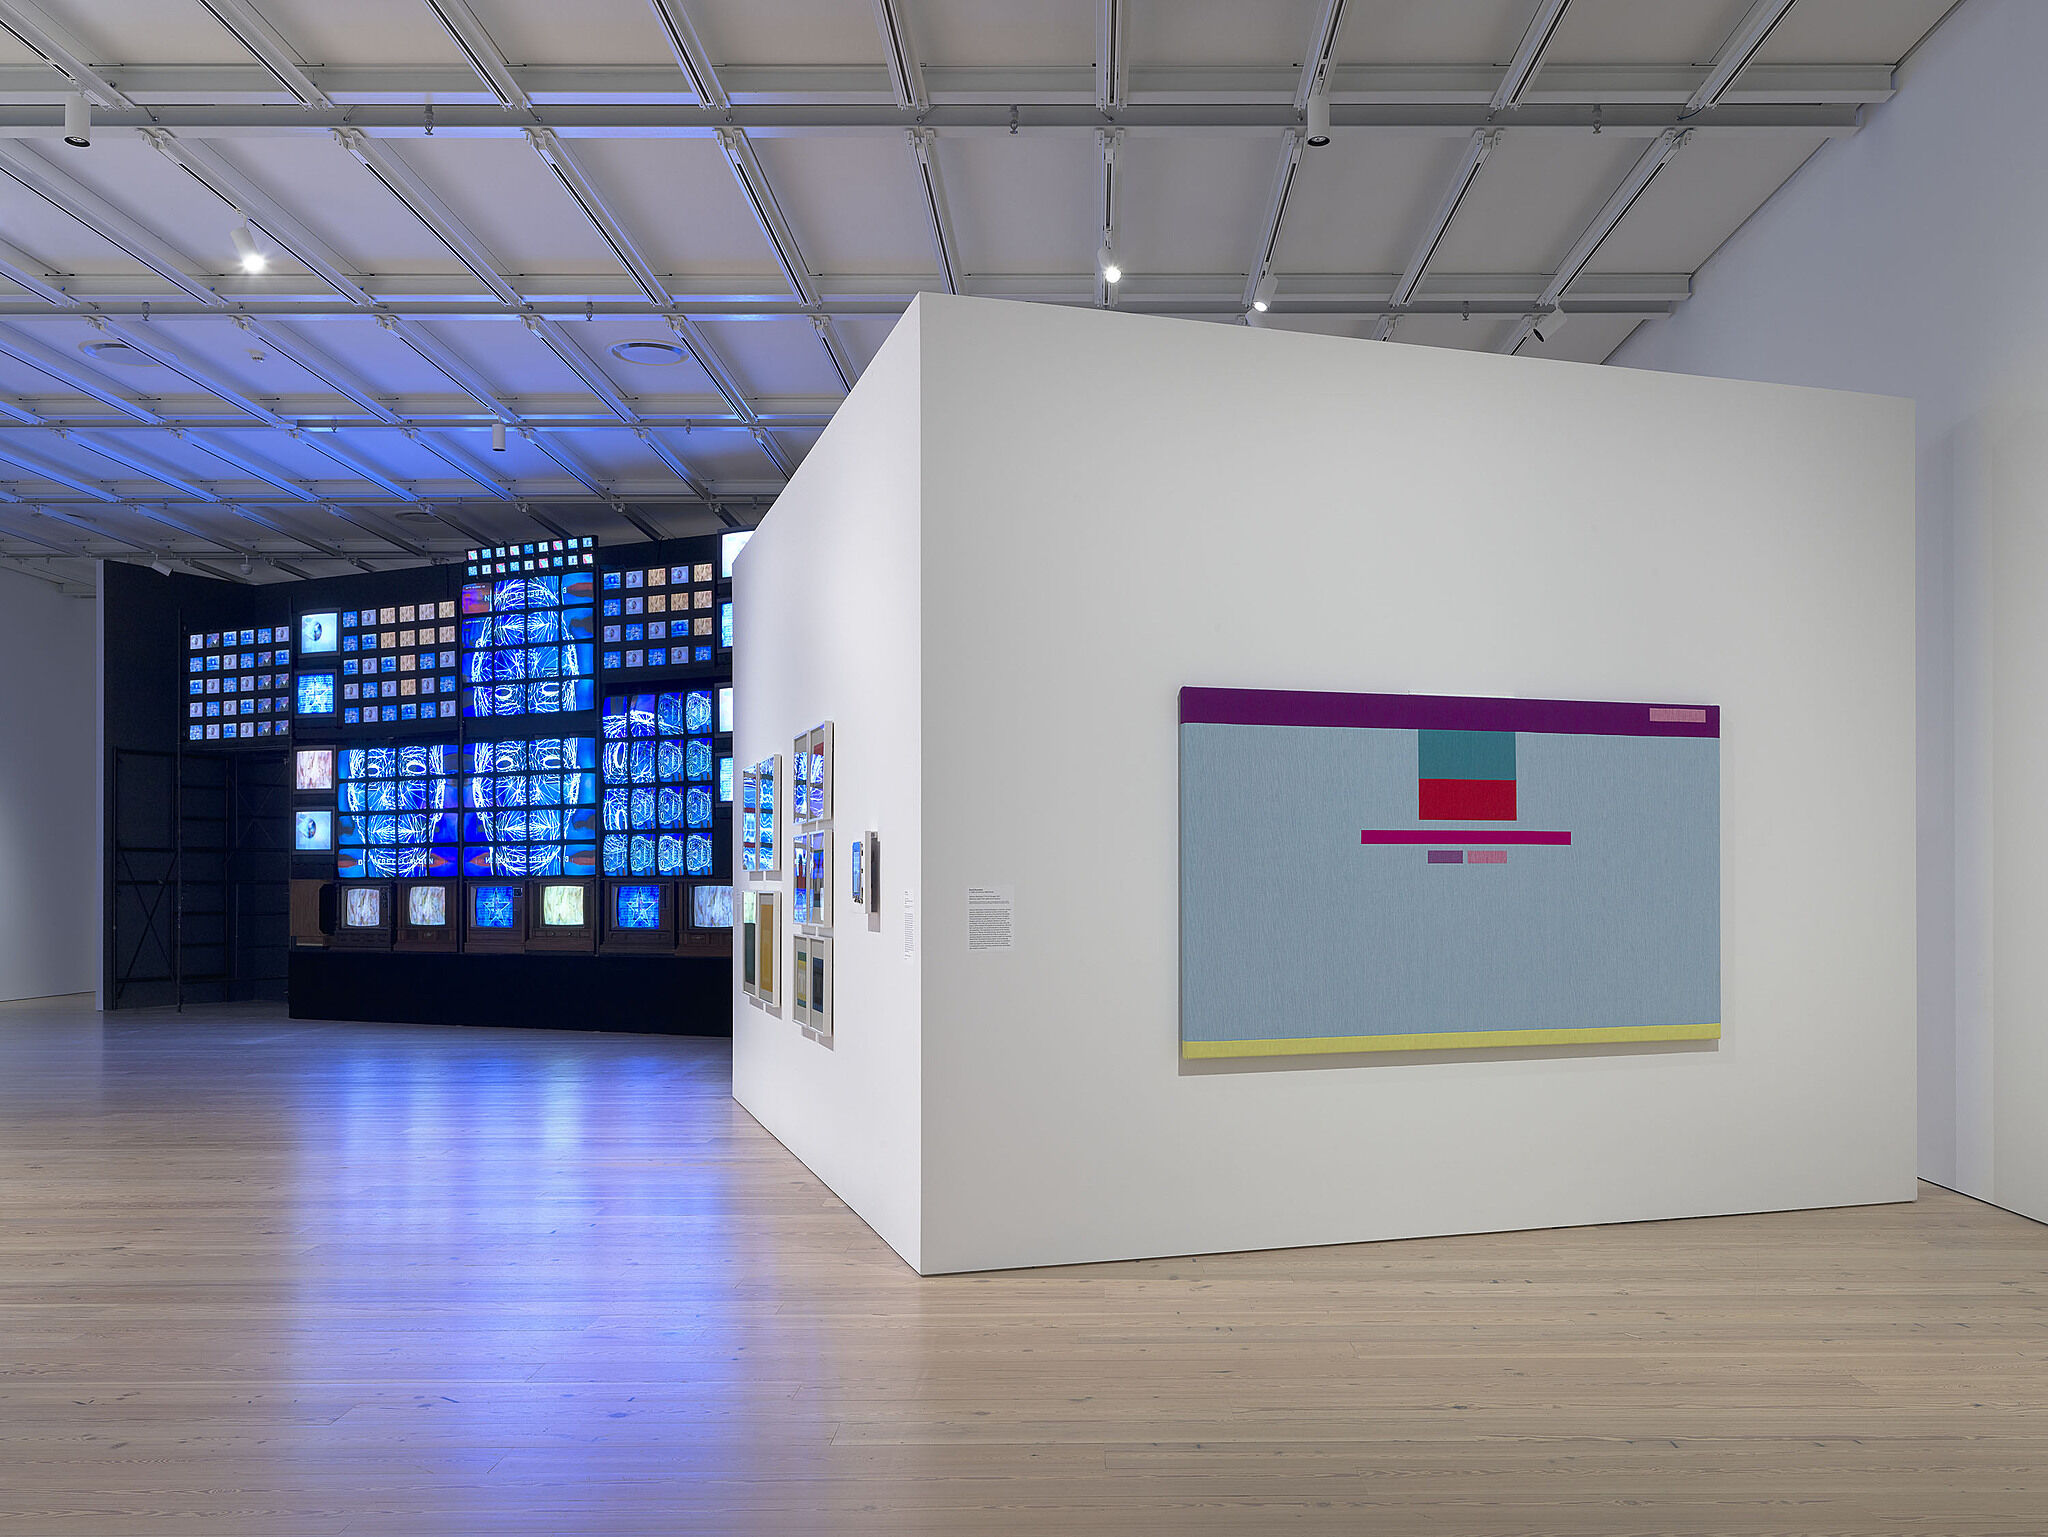 A photo of the Whitney galleries with various artworks.